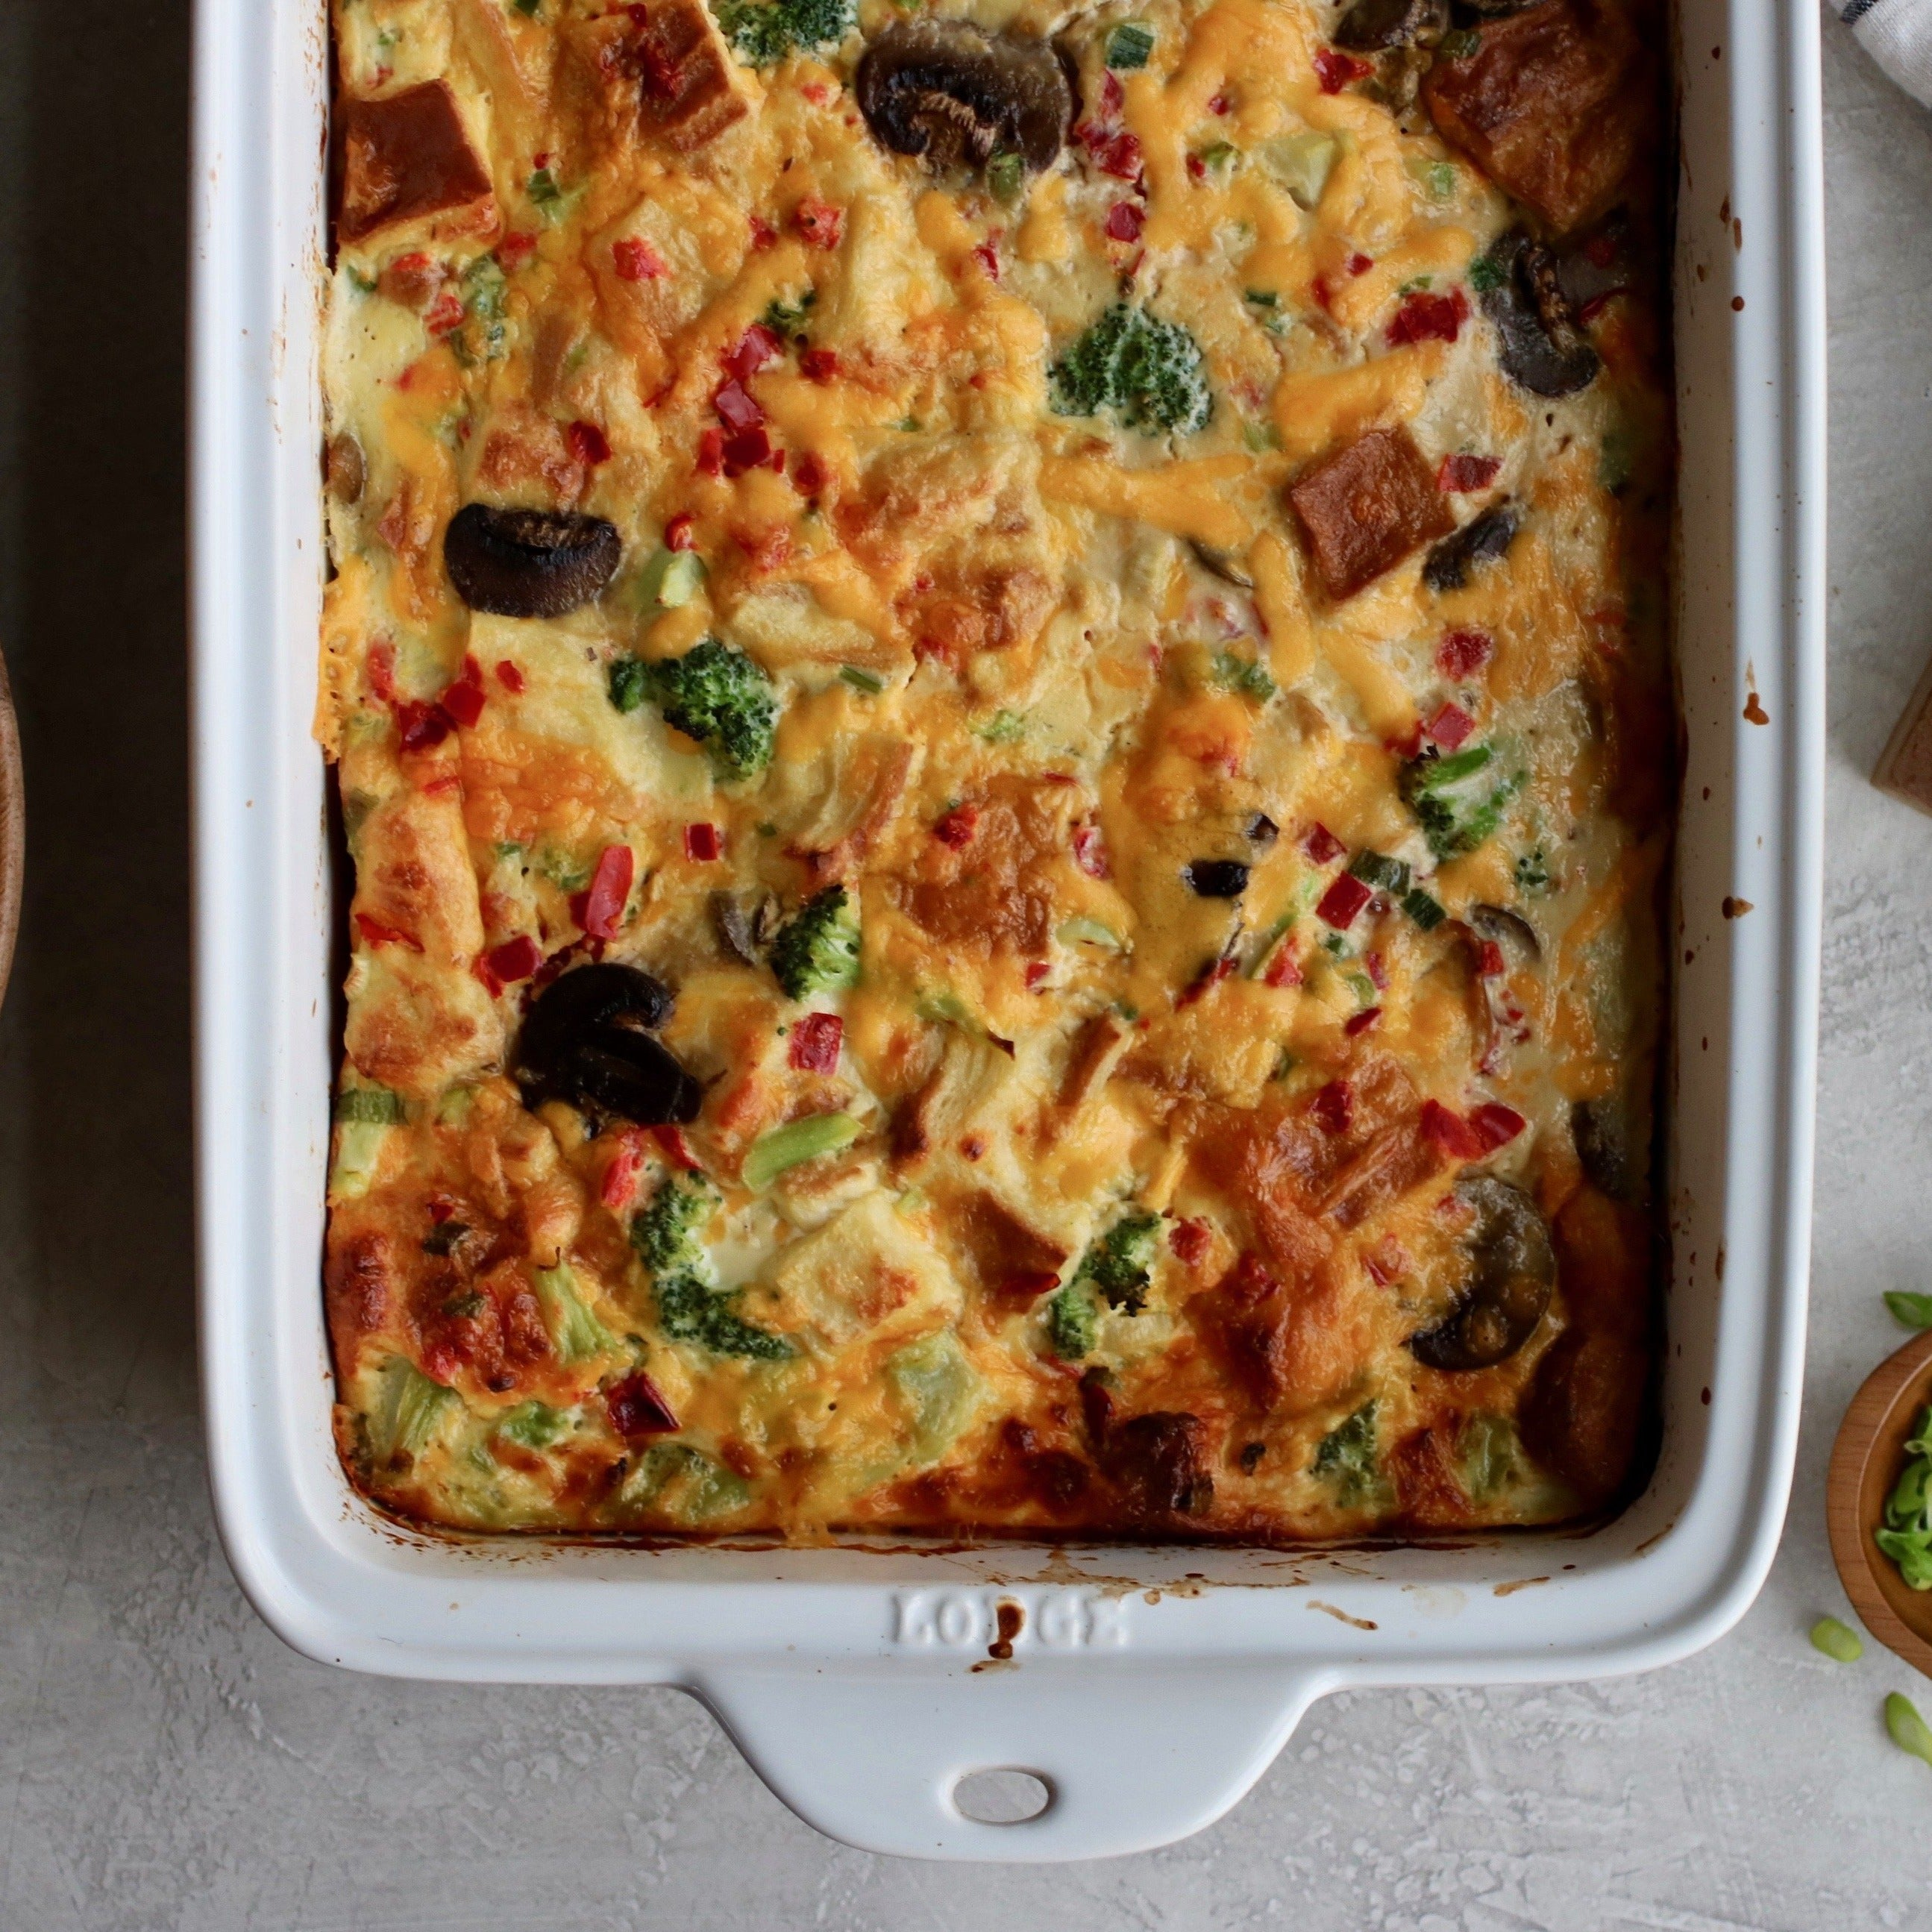 Vegetable, Cheese, and Croissant Egg Bake